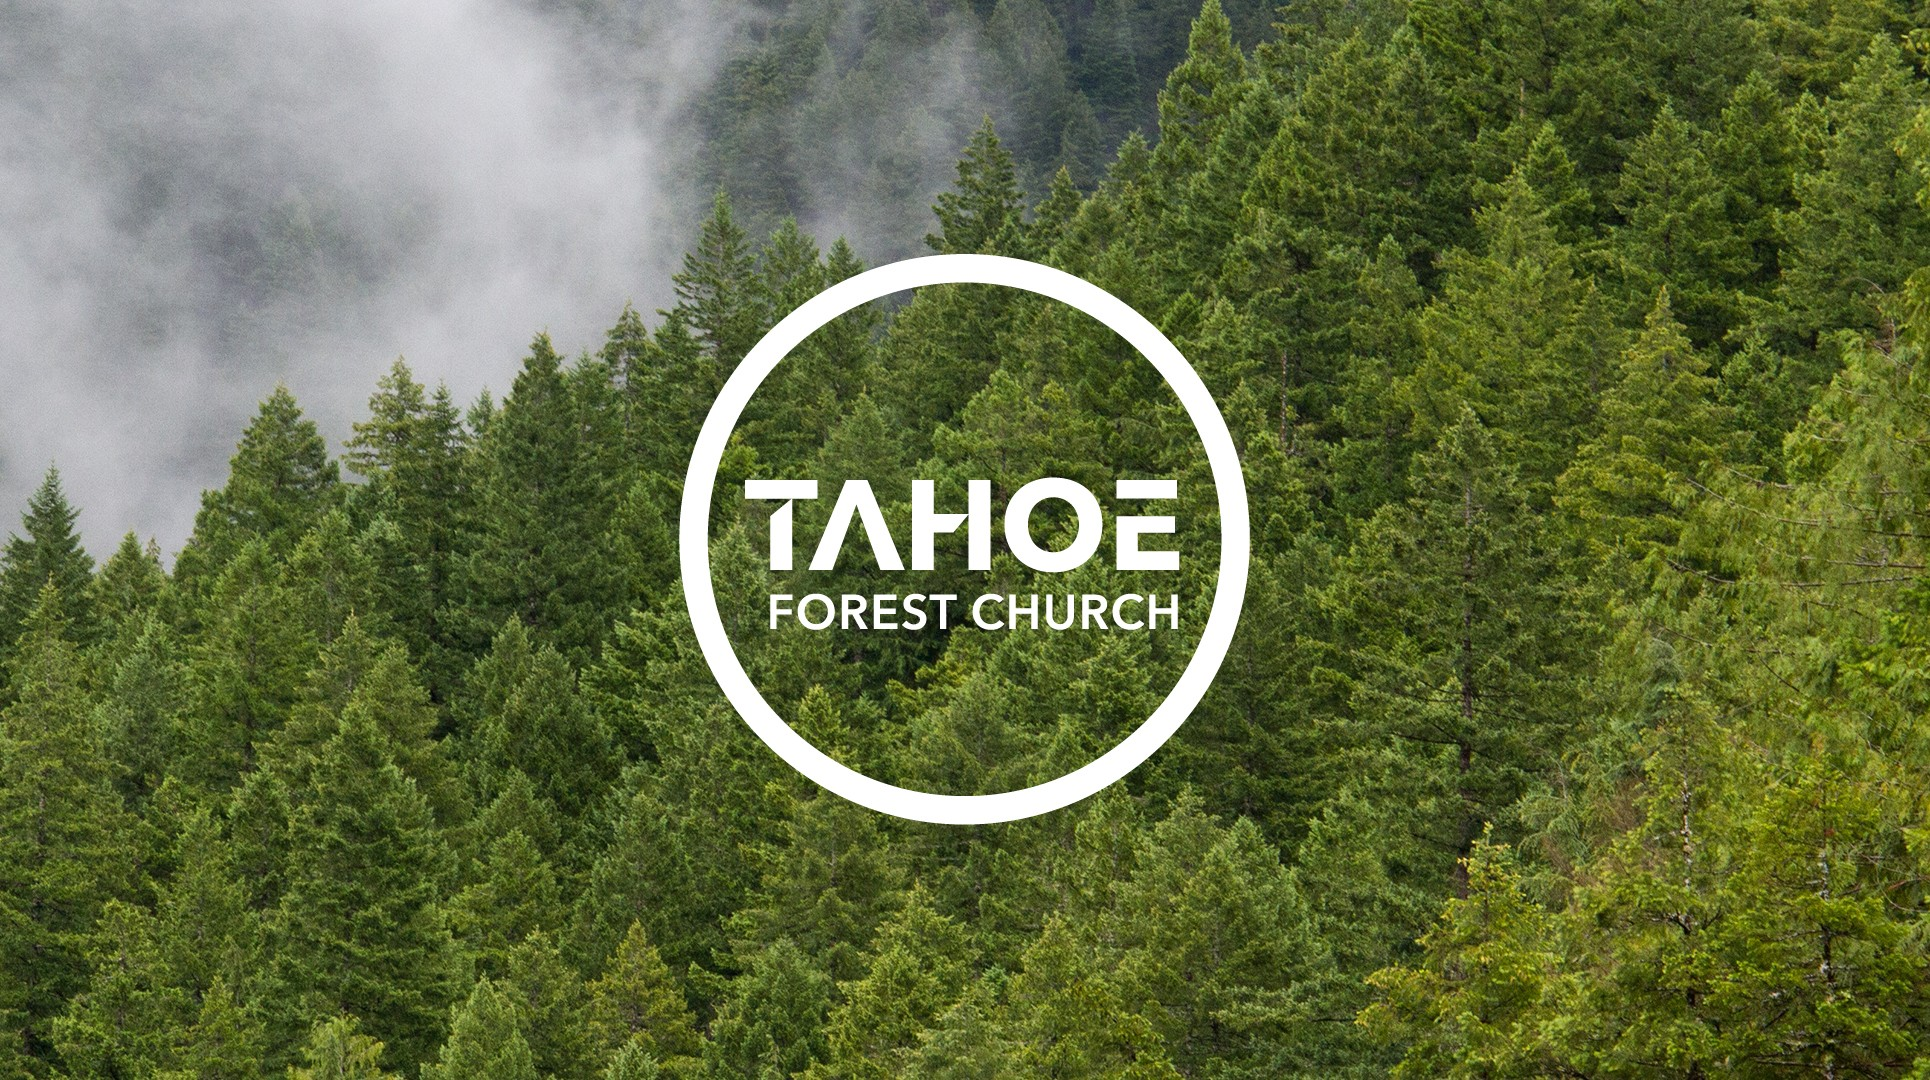 Tahoe Forest Church case study